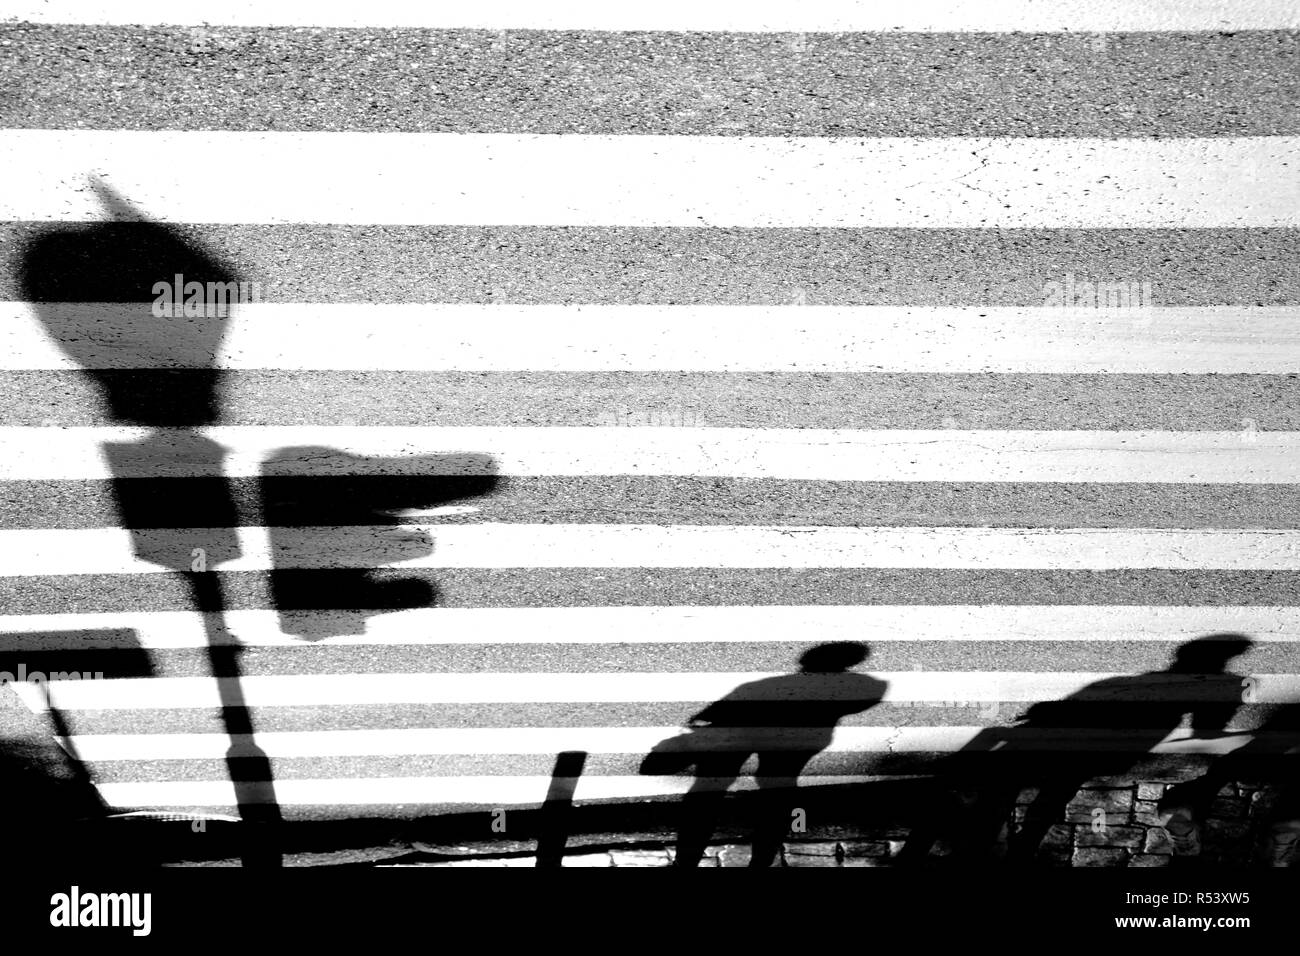 Blurry shadows of  pedestrians waiing at zebra sreet crossing with traffic light - Stock Image